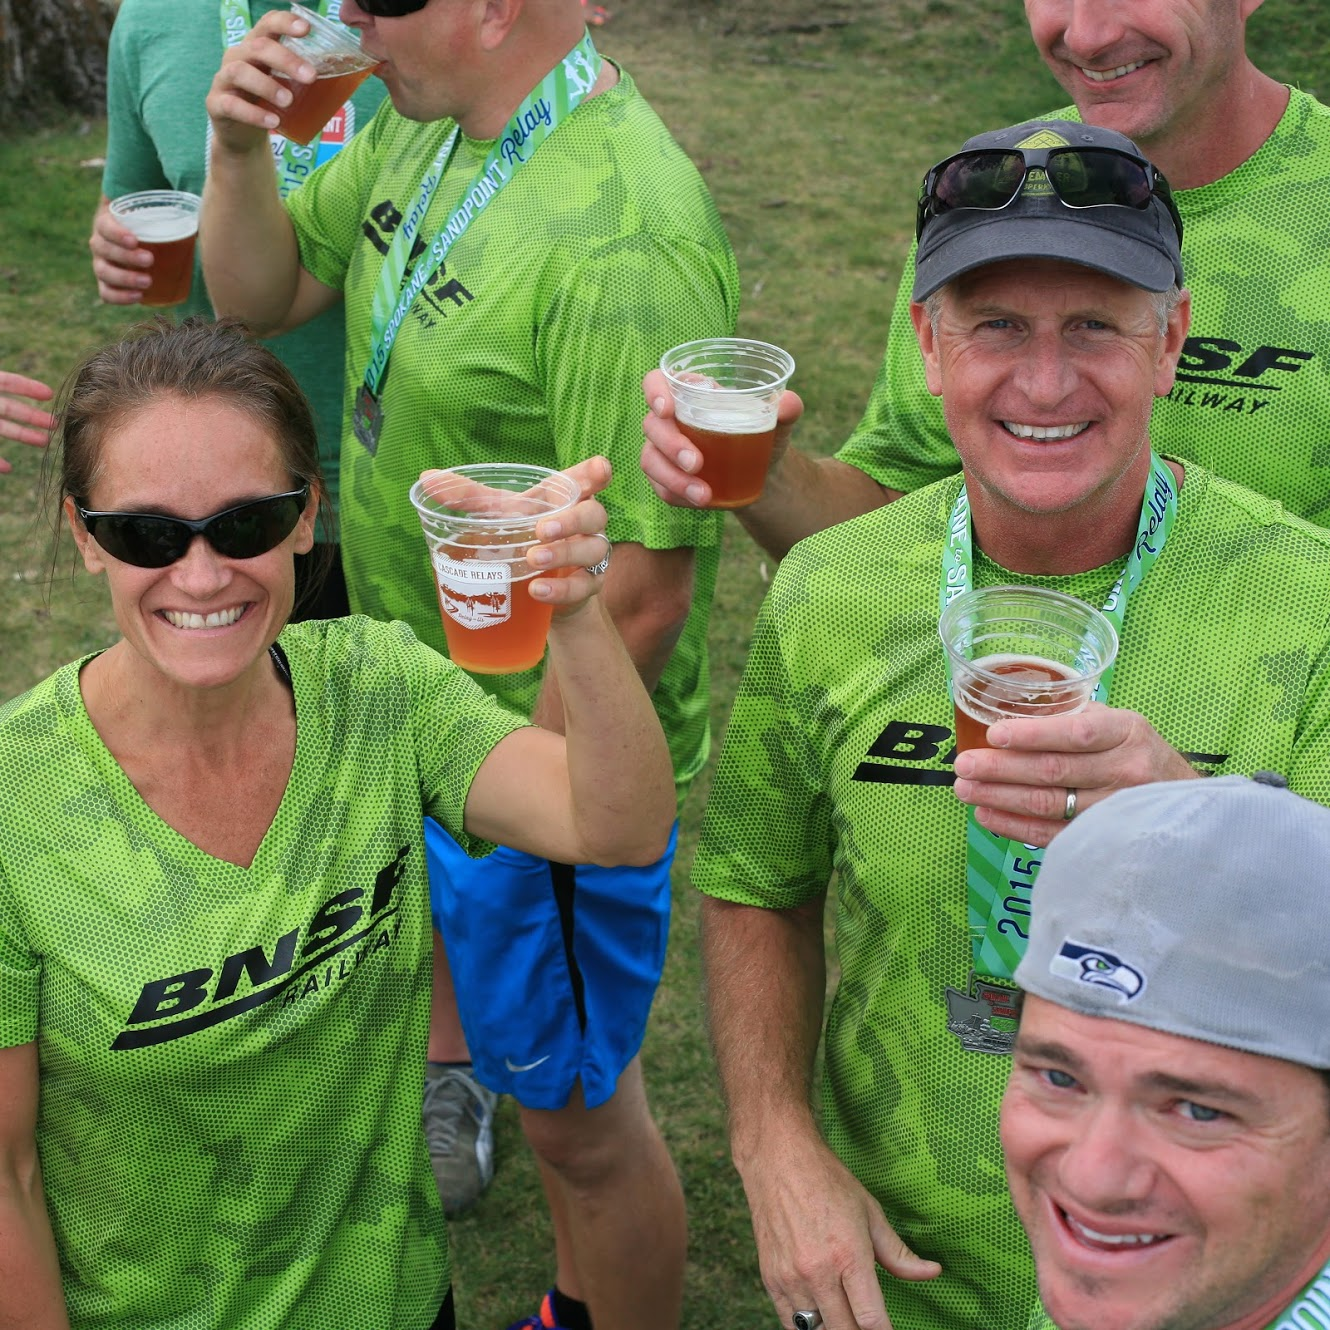 Spokane to Sandpoint relay runners enjoy post-race beers